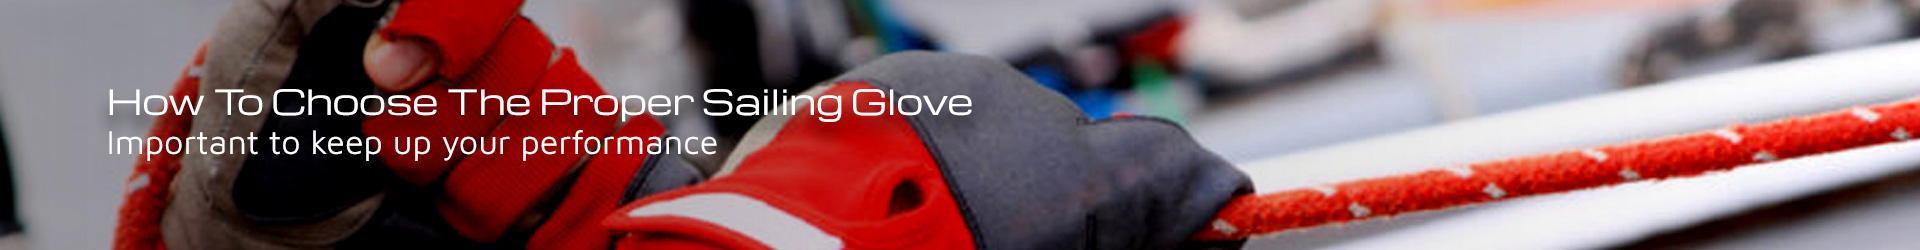 How To Choose The Proper Sailing Glove